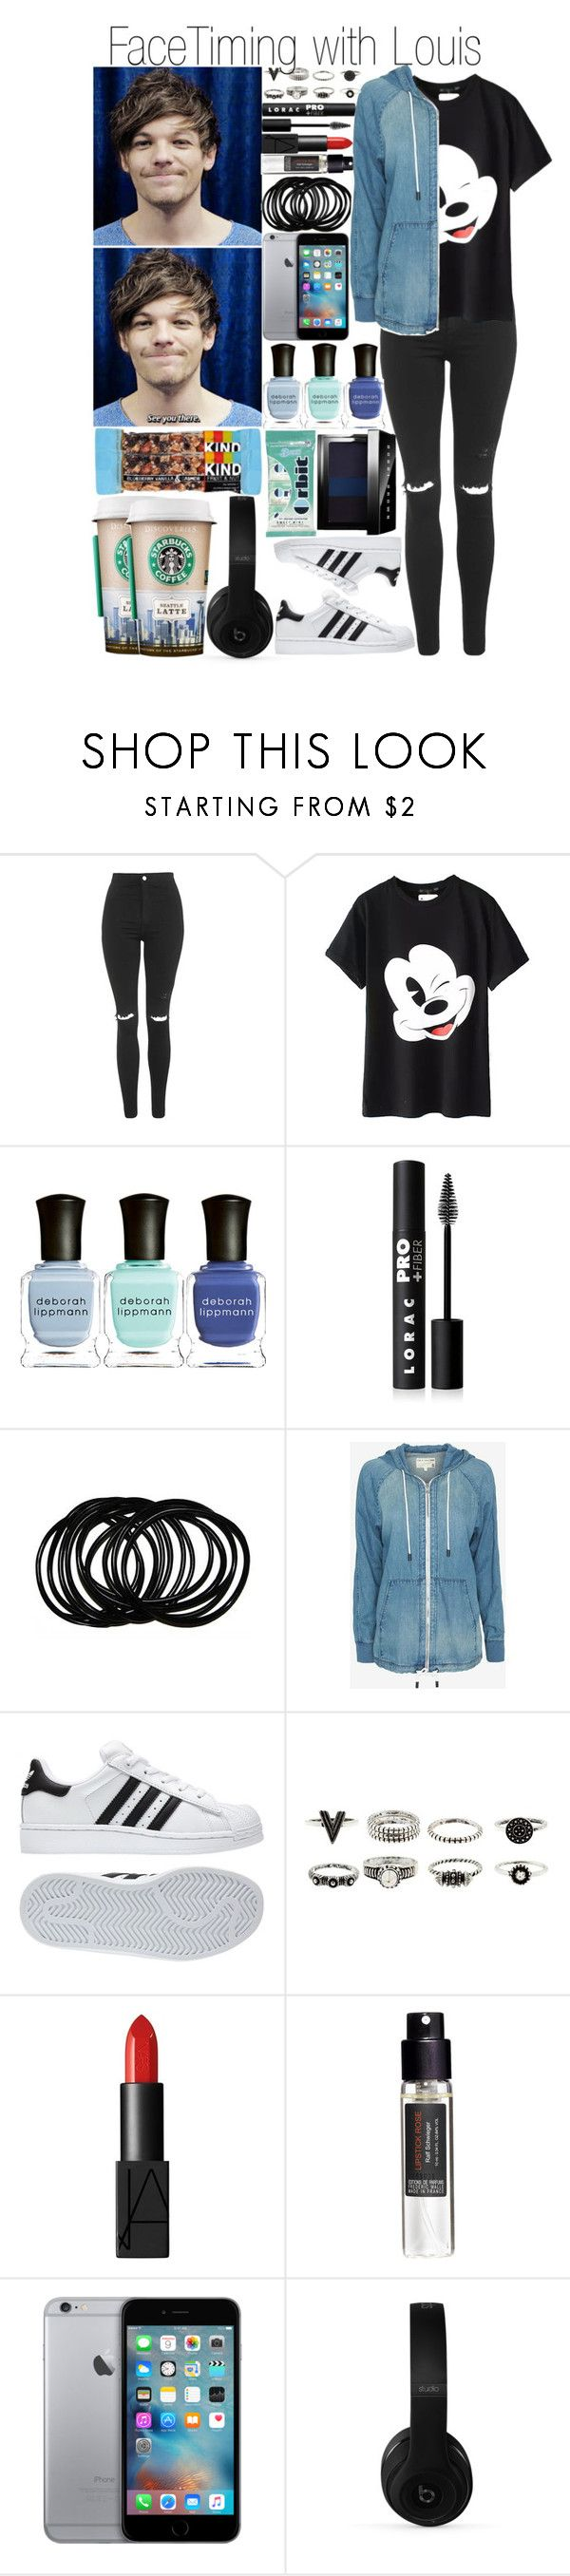 """Facetiming with Louis"" by fashion-onedirection ❤ liked on Polyvore featuring Topshop, Deborah Lippmann, LORAC, rag & bone, adidas, NARS Cosmetics, Frédéric Malle, Beats by Dr. Dre, Bobbi Brown Cosmetics and louis"